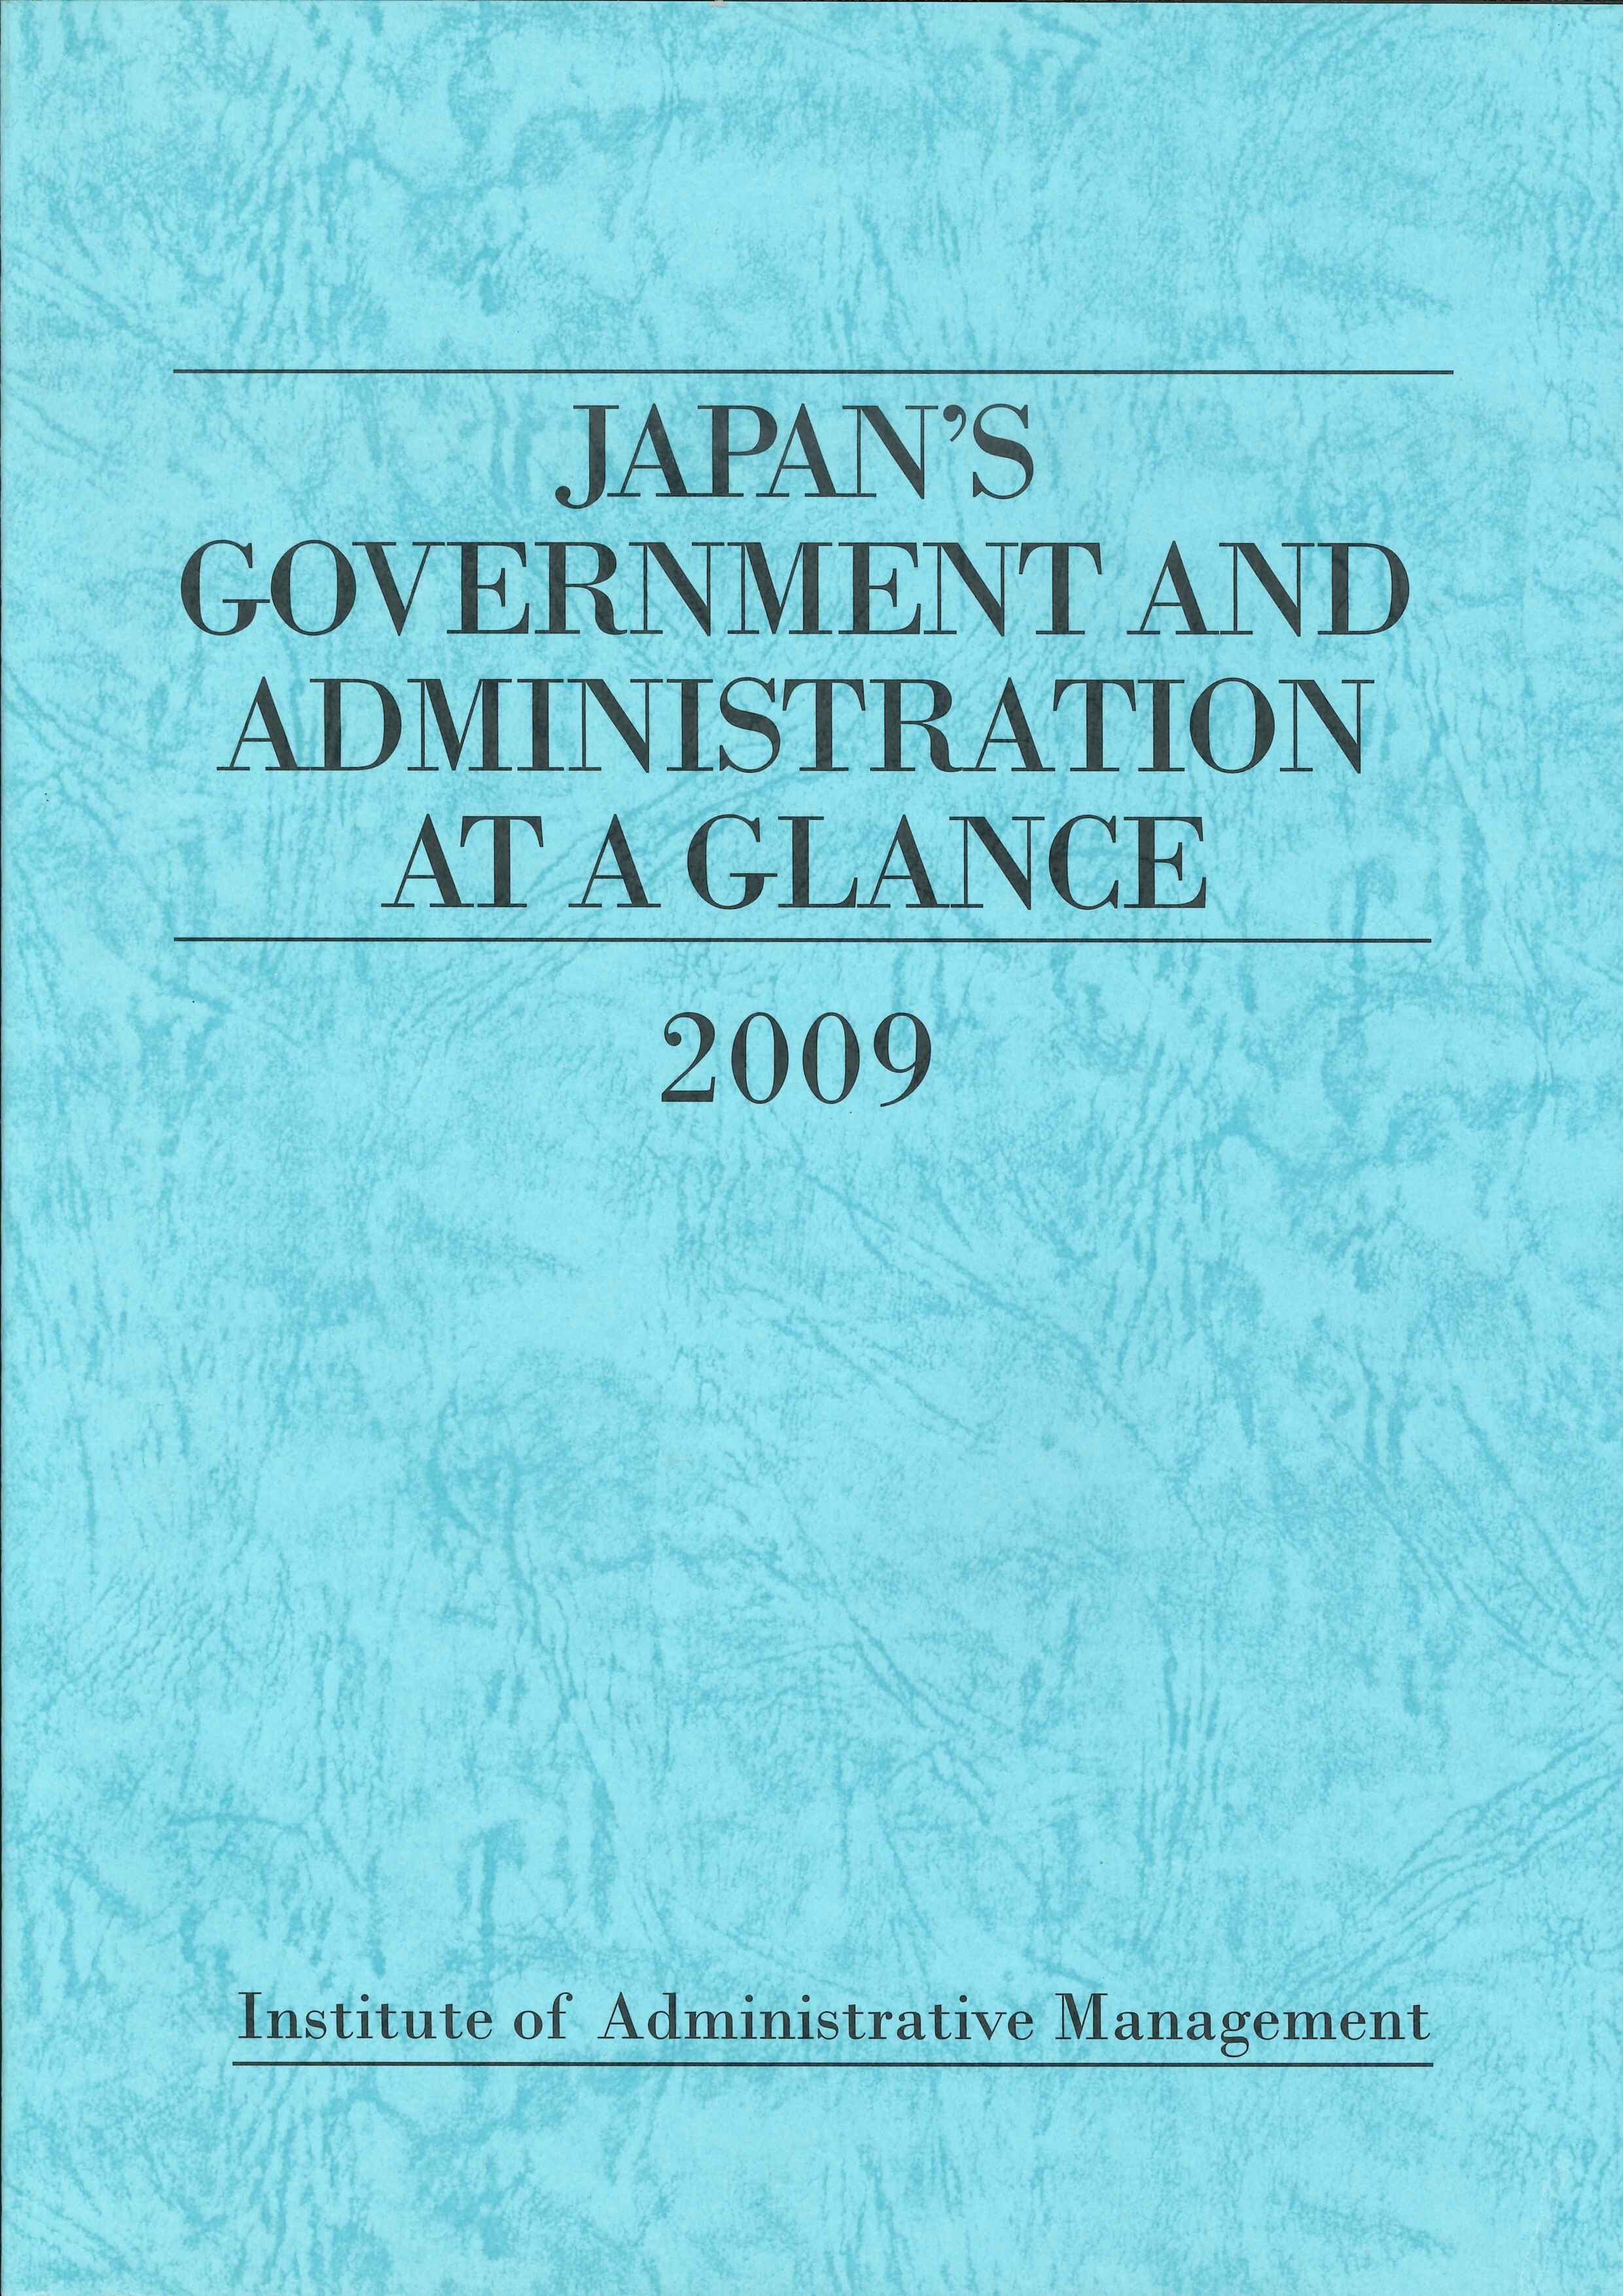 [JAPAN'S GOVERNMENT AND ADMINISTRATION AT A GLANCE]